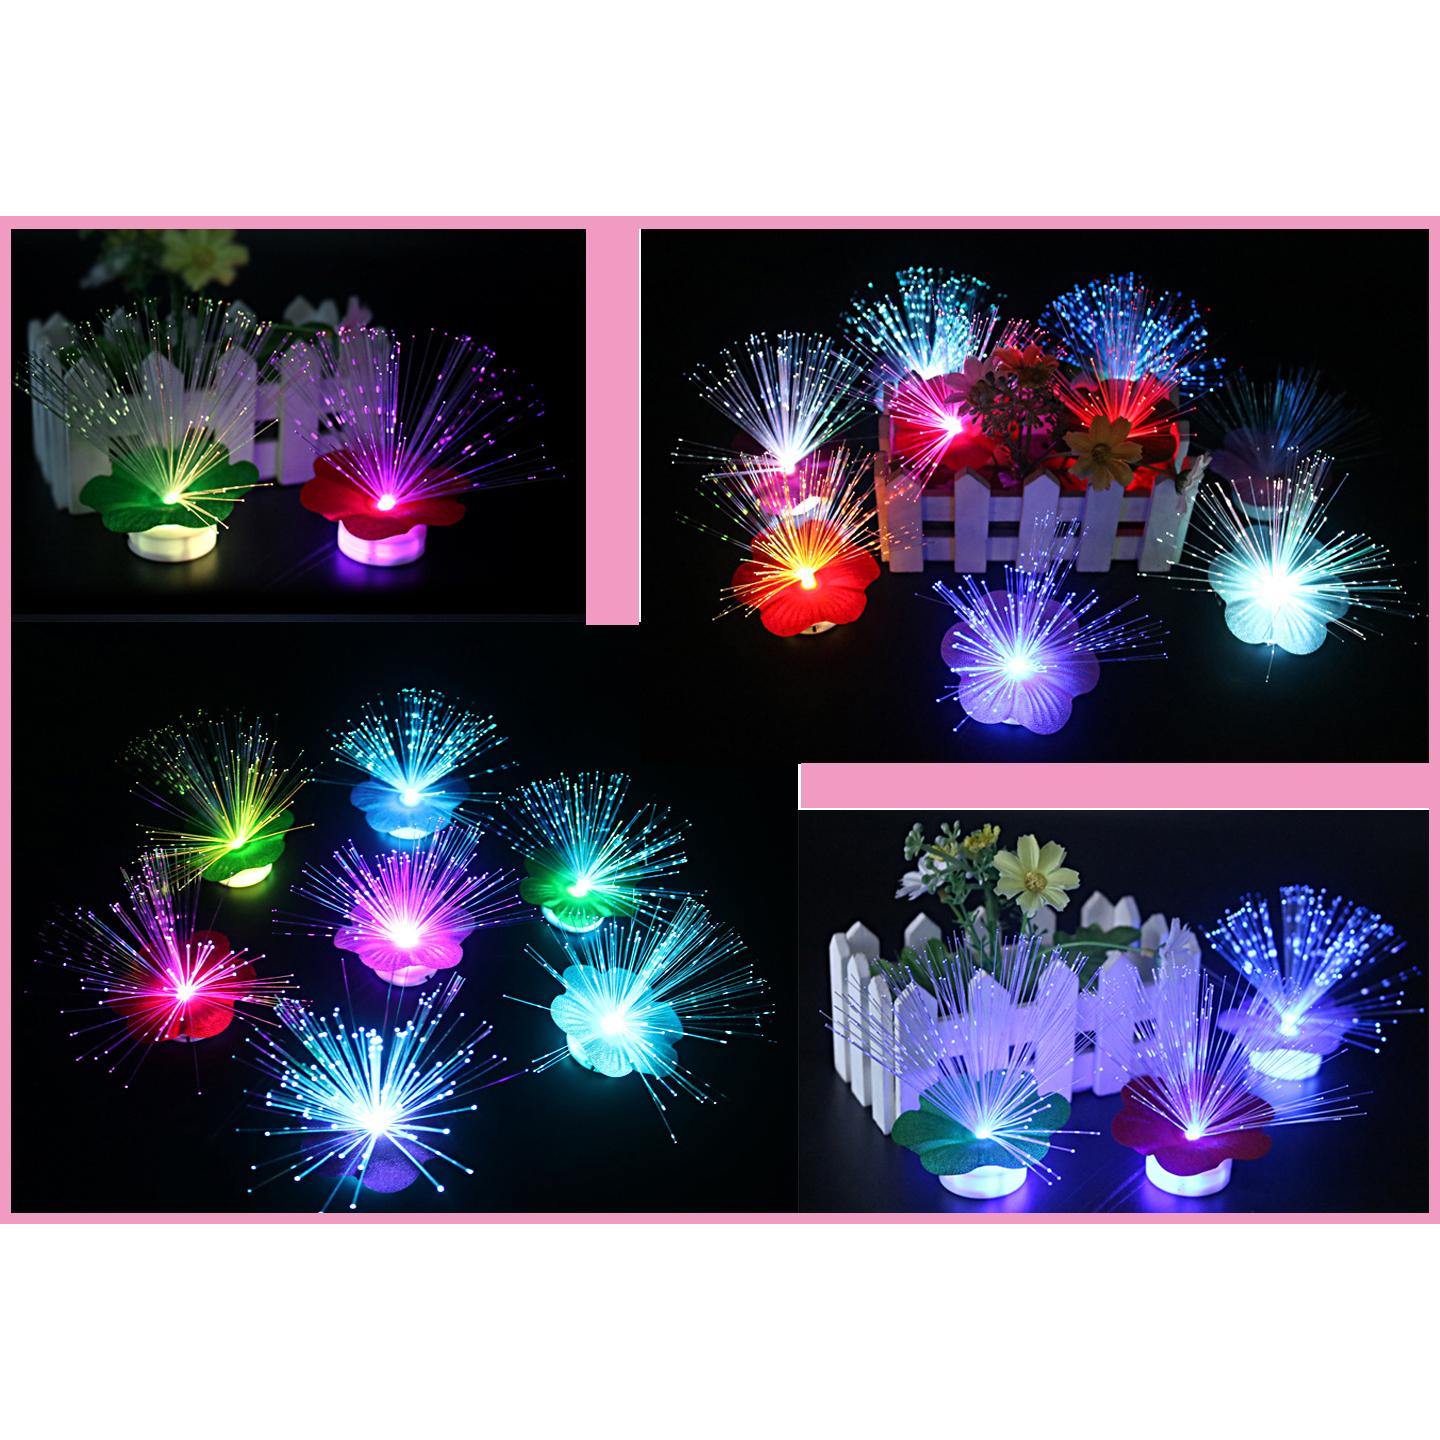 Rumput Bunga Led Lampu Hias Mini 7 Warna Light Lamp Cahaya Aksesoris Assesoris Hp U Sj0019